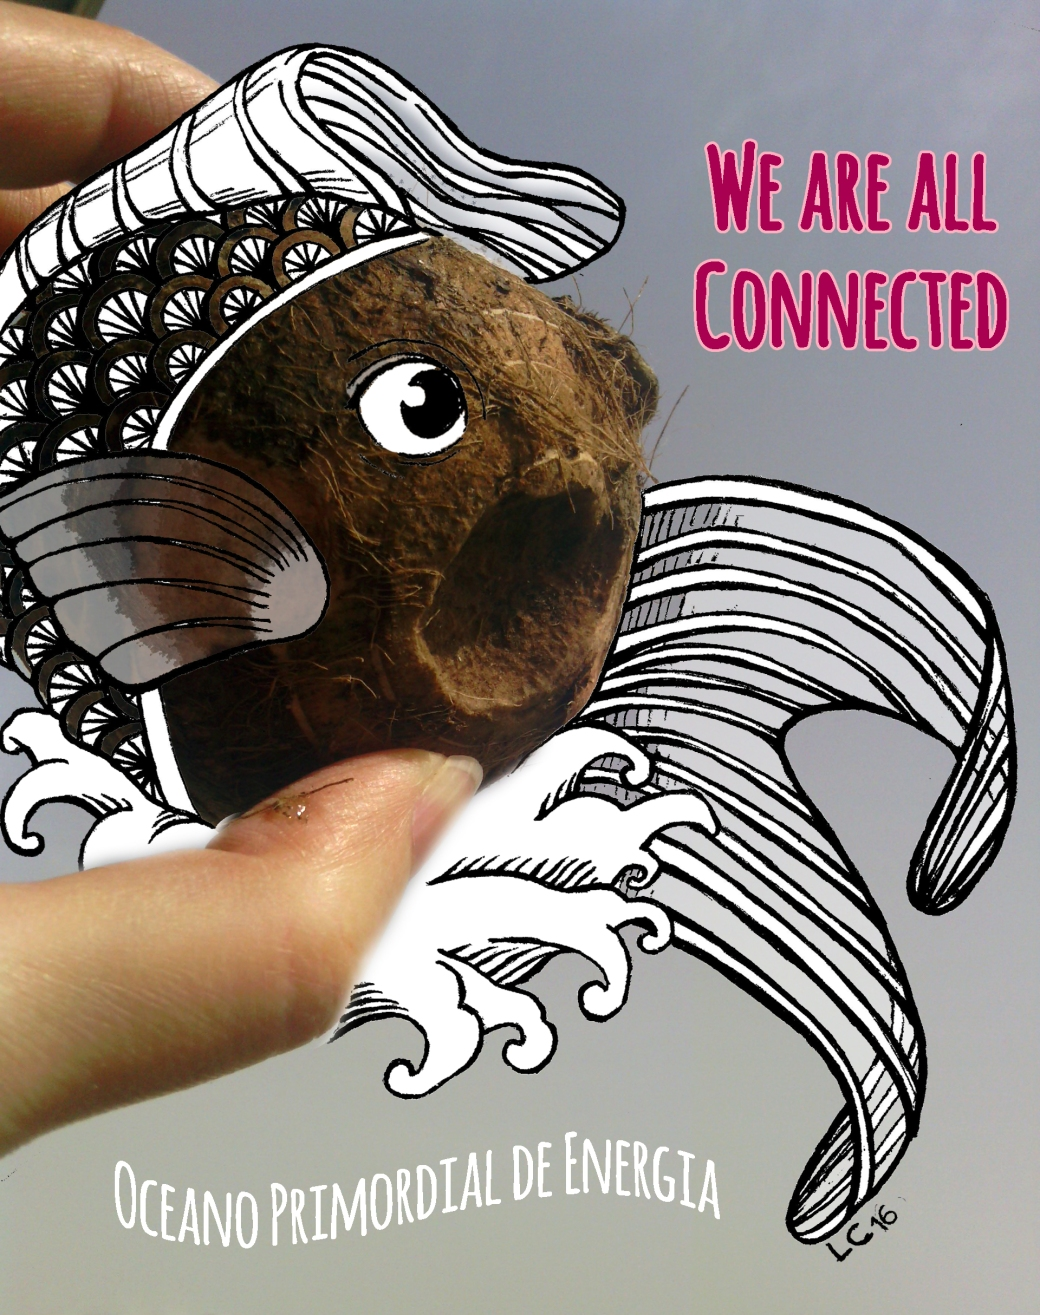 2. We are all connected peixe.jpg